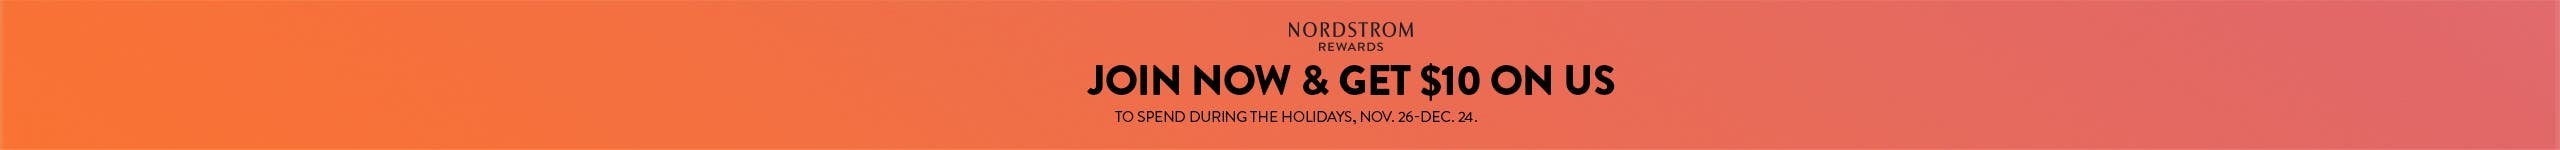 JOIN NOW & GET $10 ON US TO SPEND NOVEMBER 26 TO DECEMBER 24